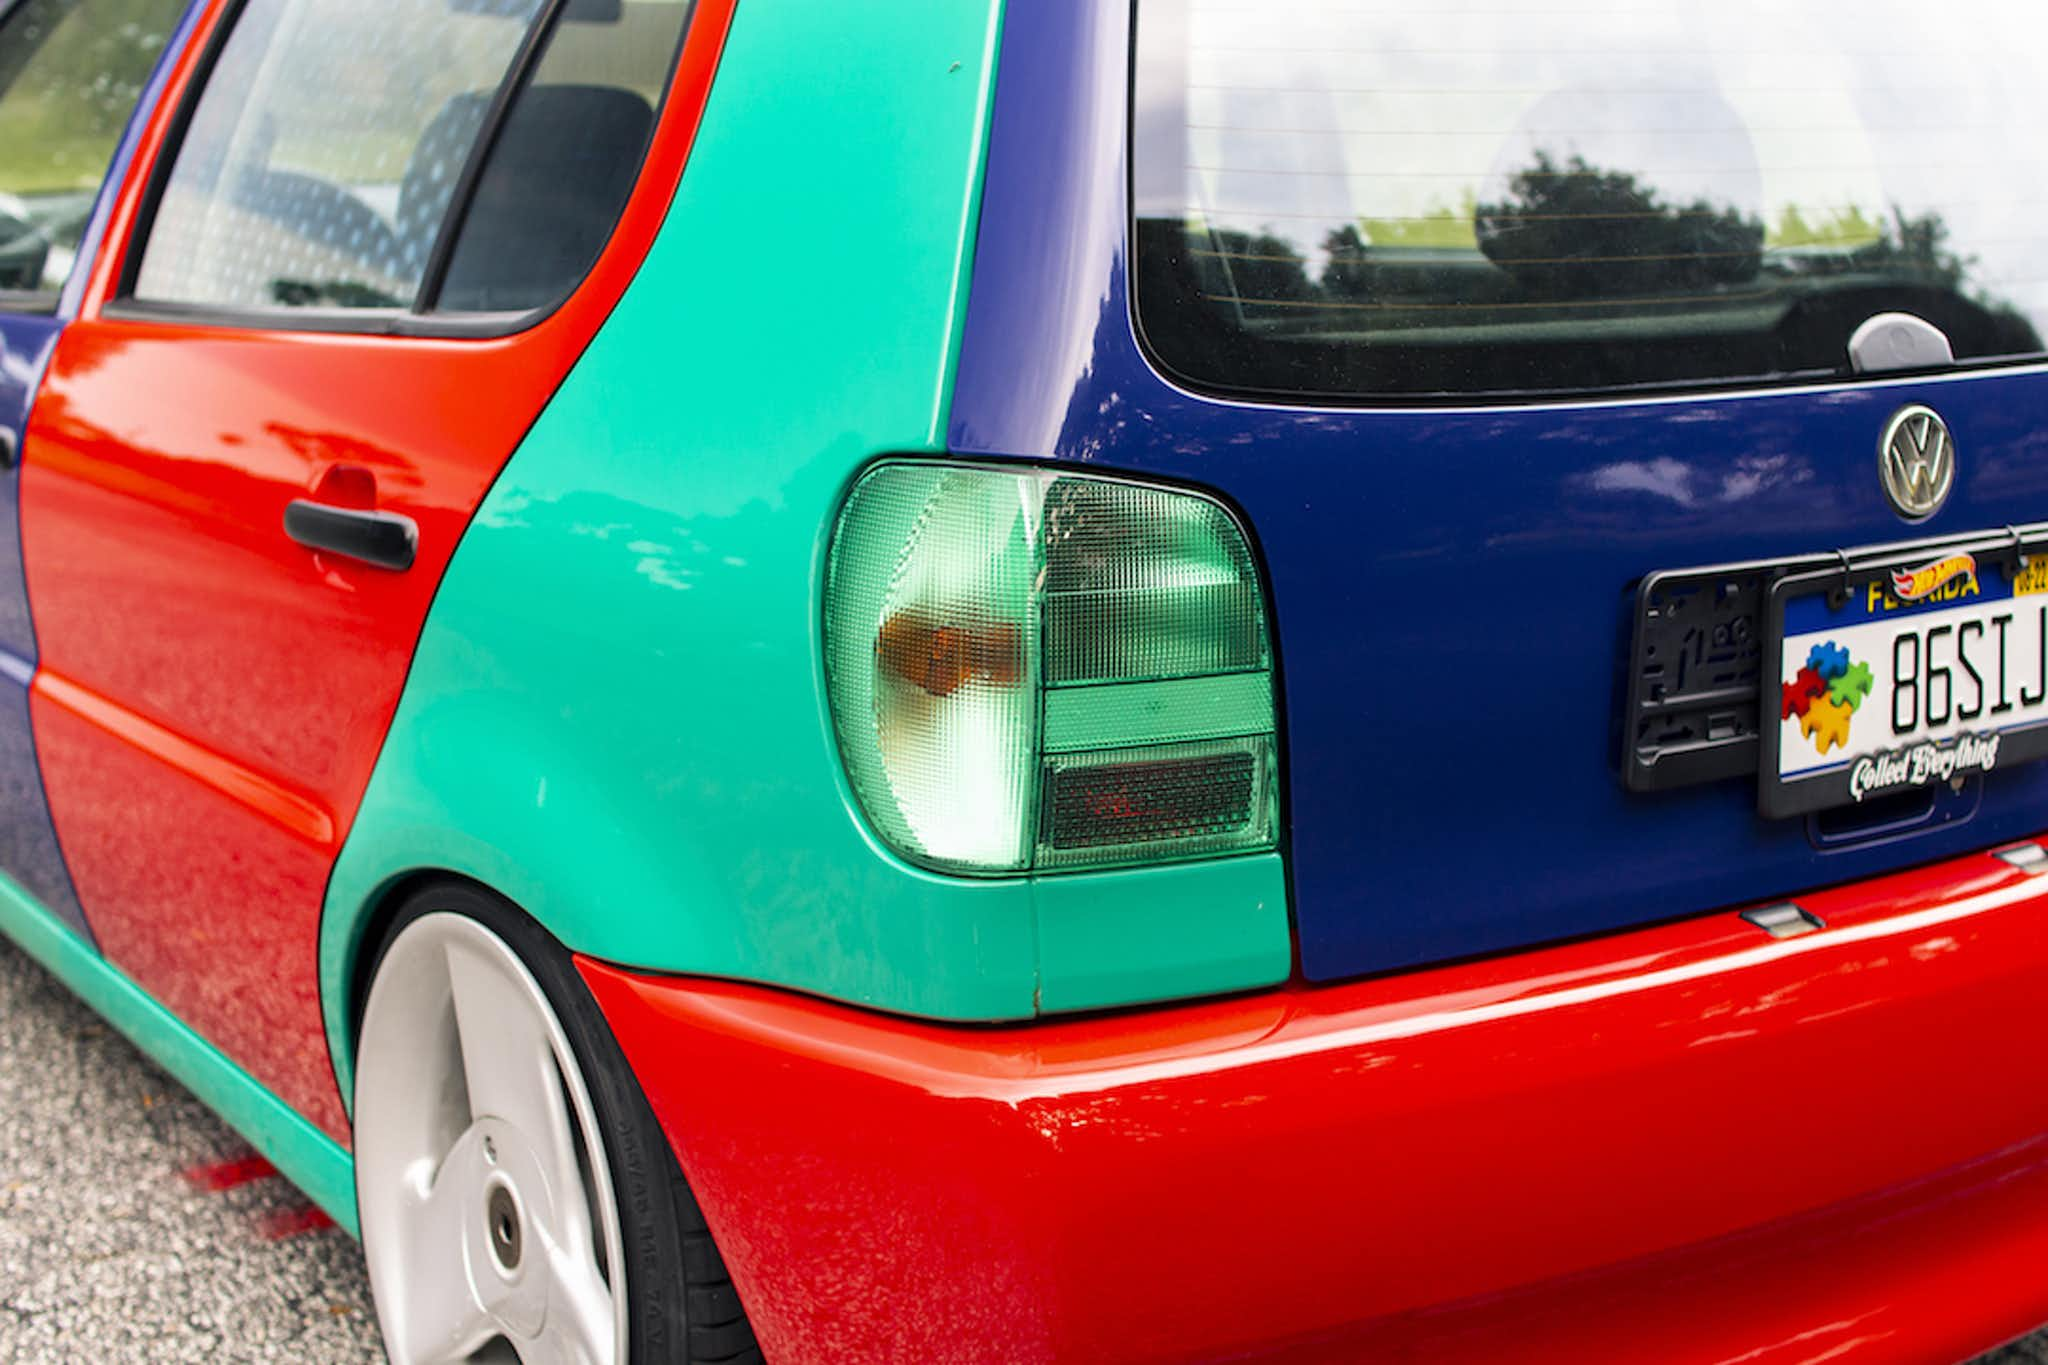 GERMANS CAN'T WRAP - VW POLO HARLEQUIN